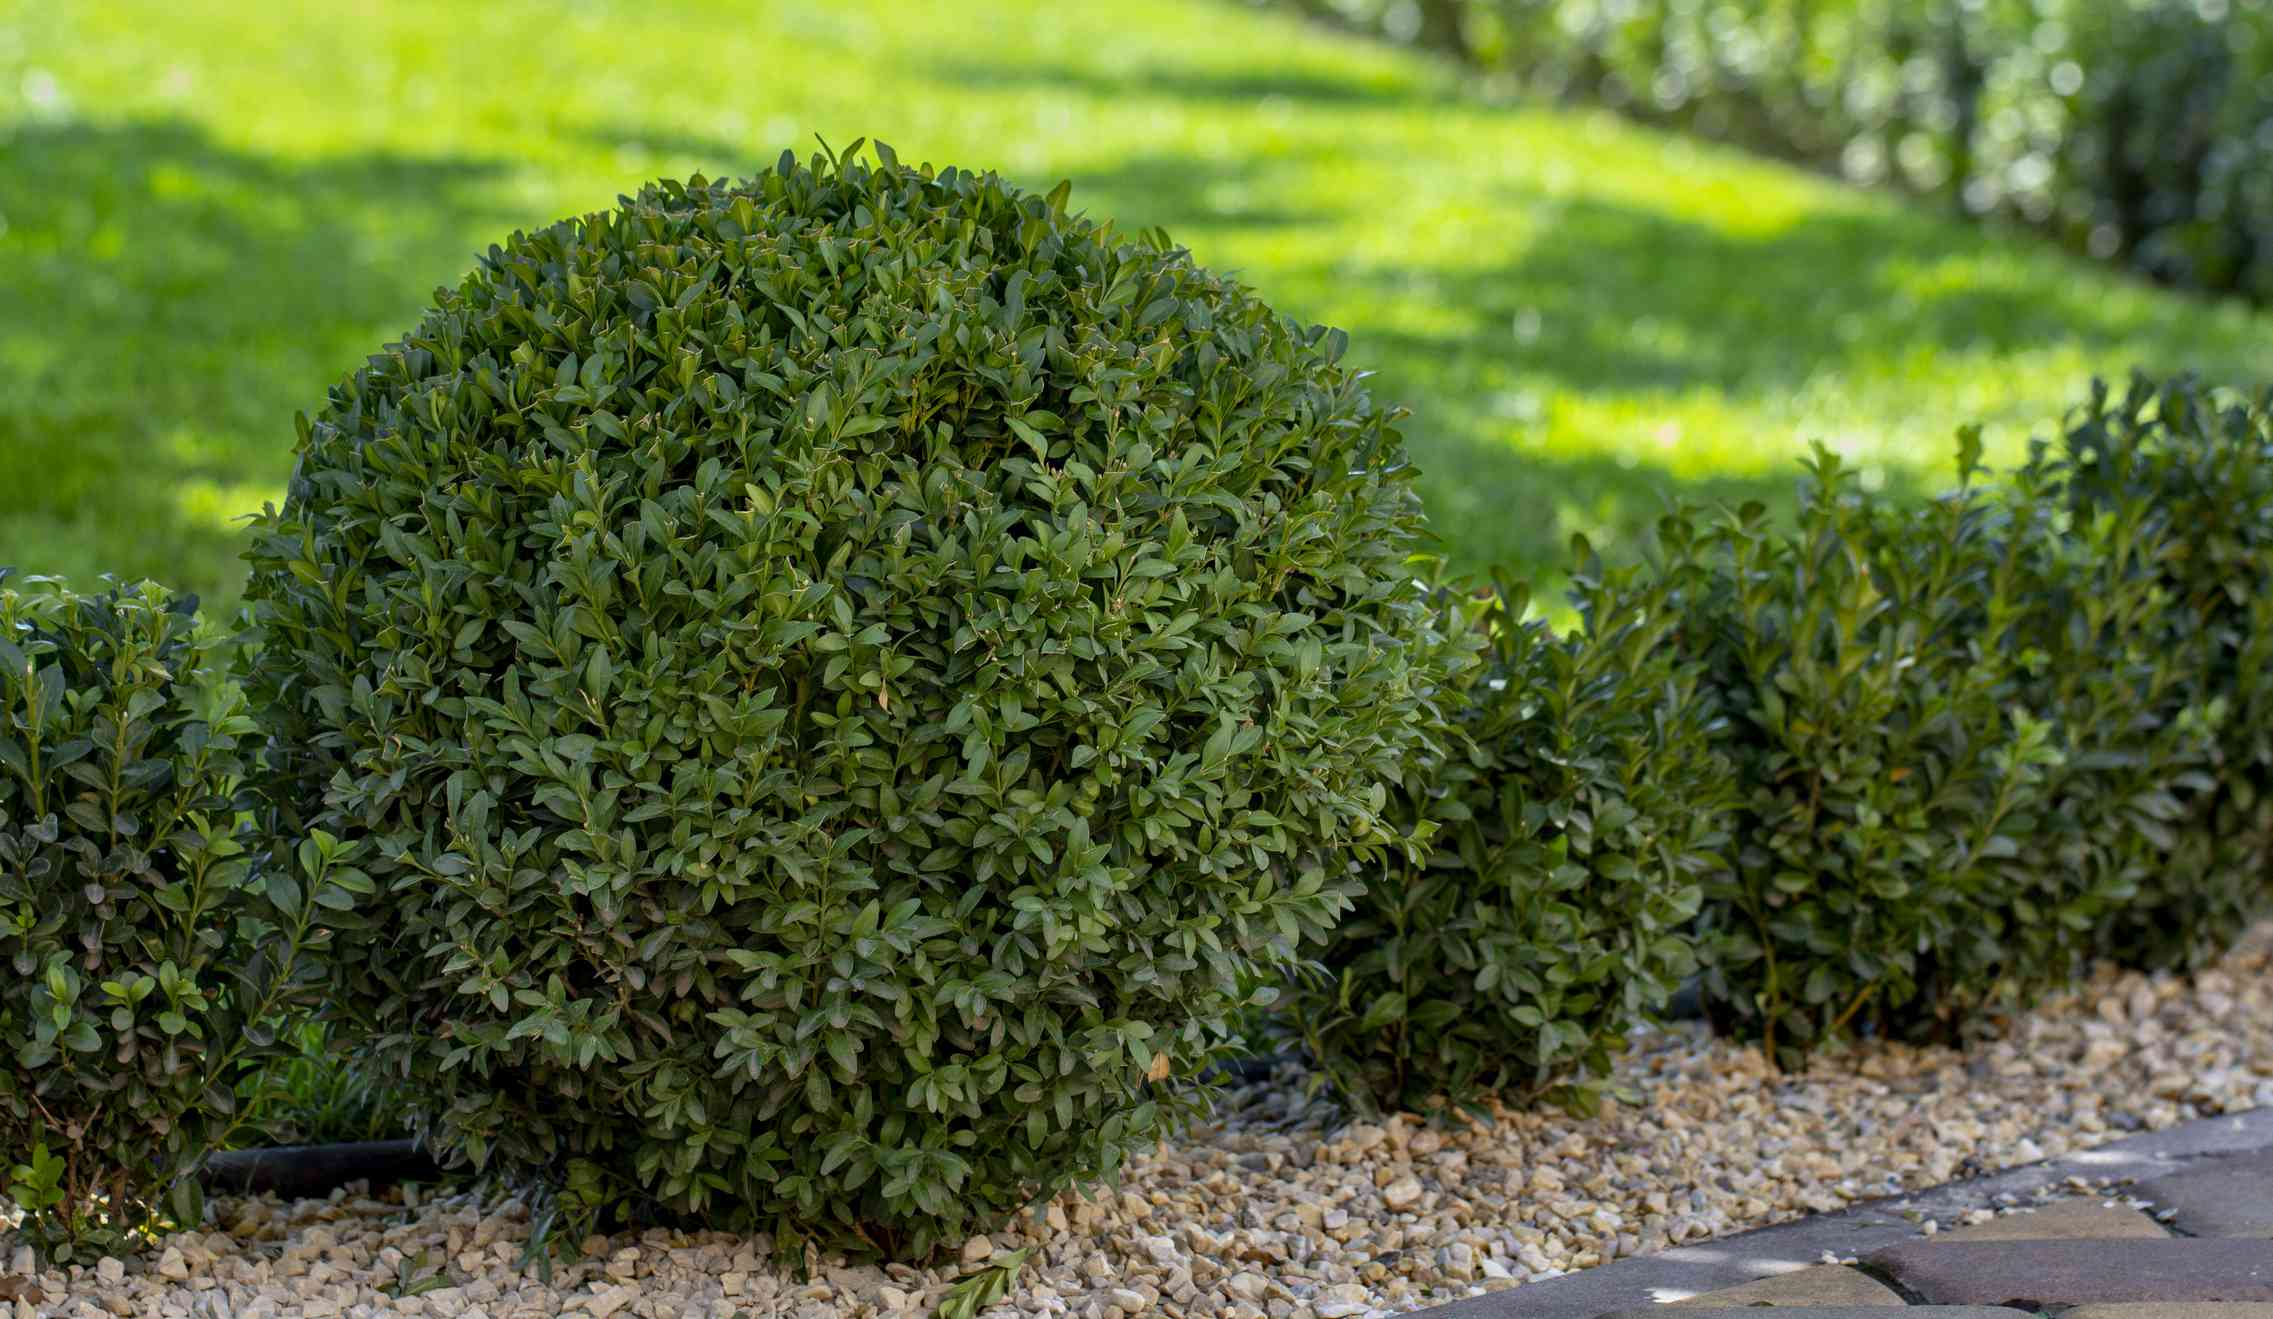 Lawn with plants. Boxwood, evergreen foliage plant